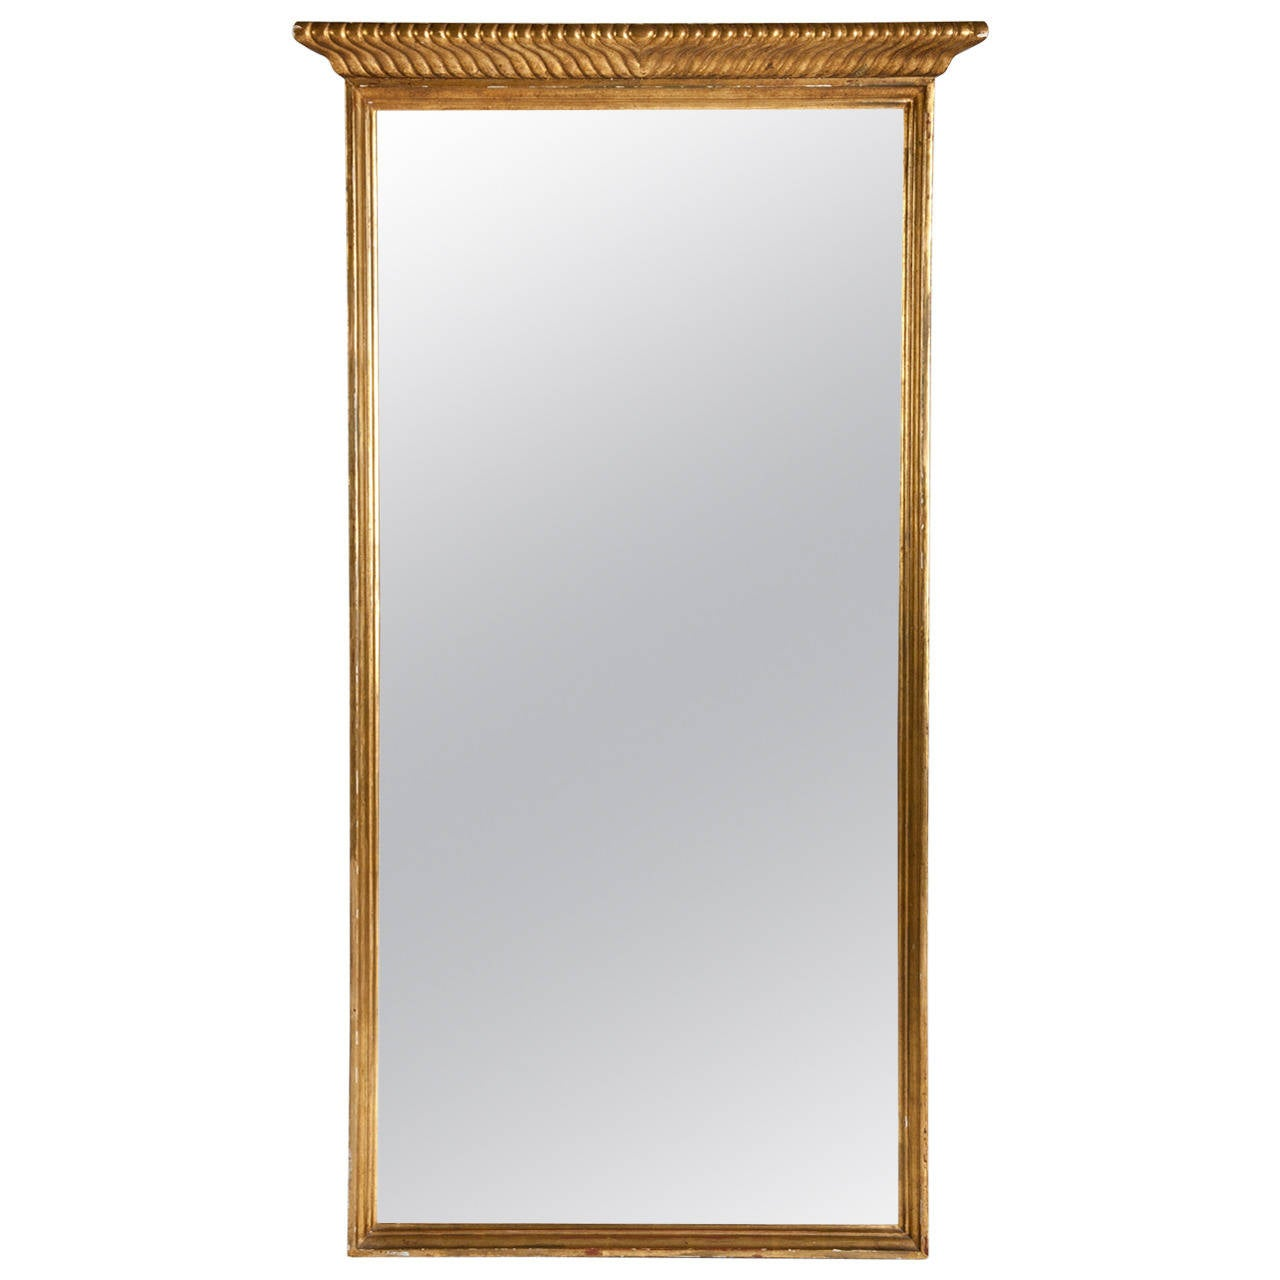 Vintage wall mirror at 1stdibs for Antique wall mirrors